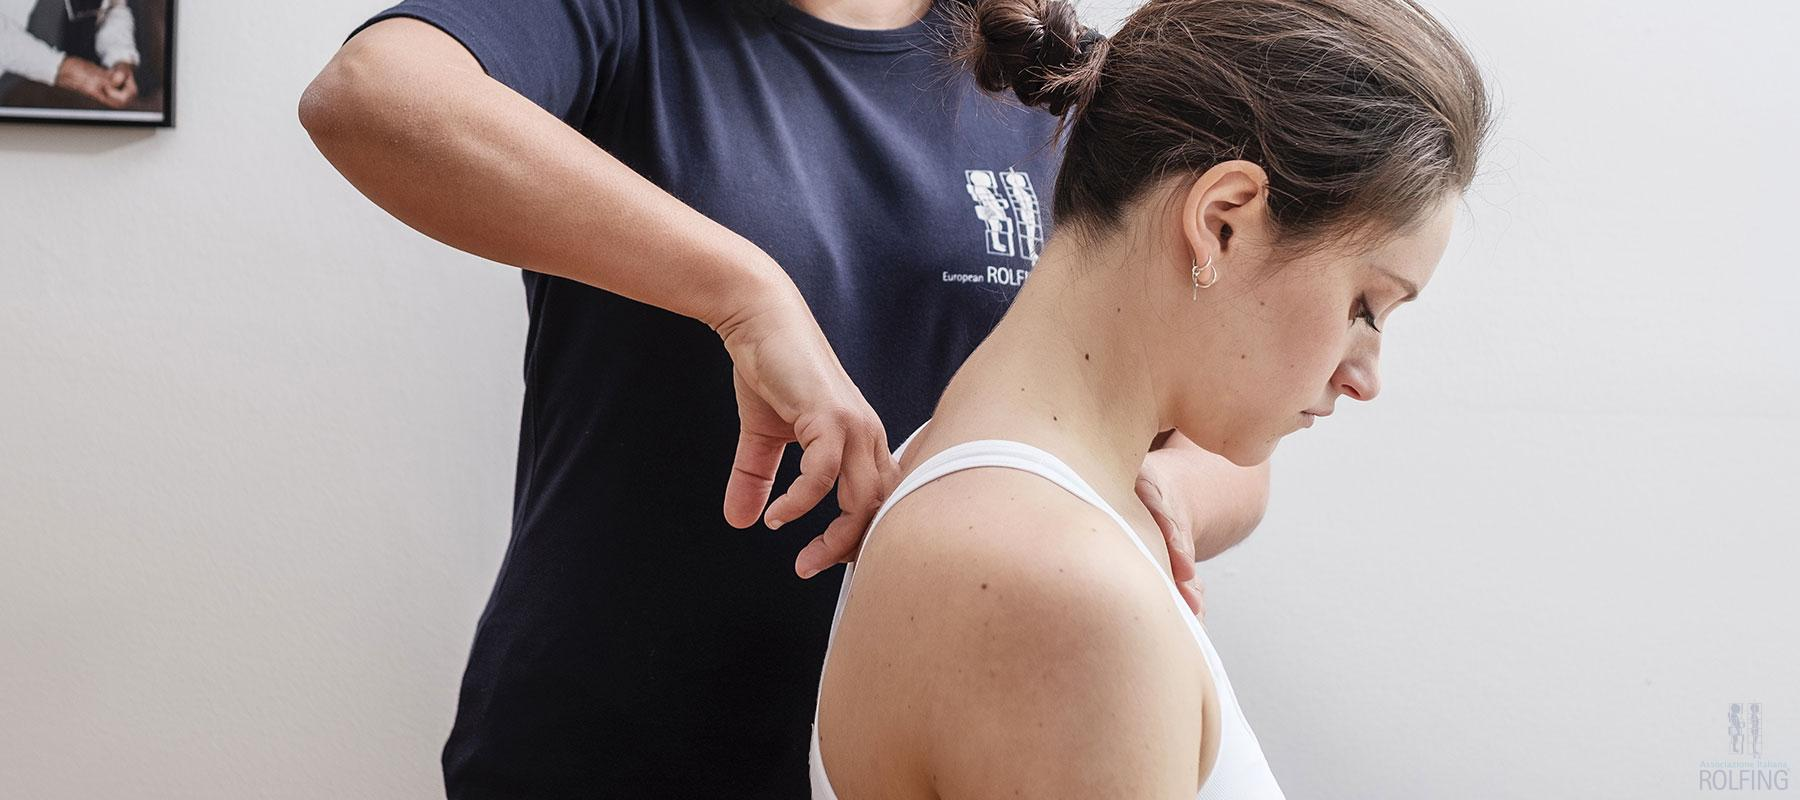 Integrazione Strutturale Rolfing®